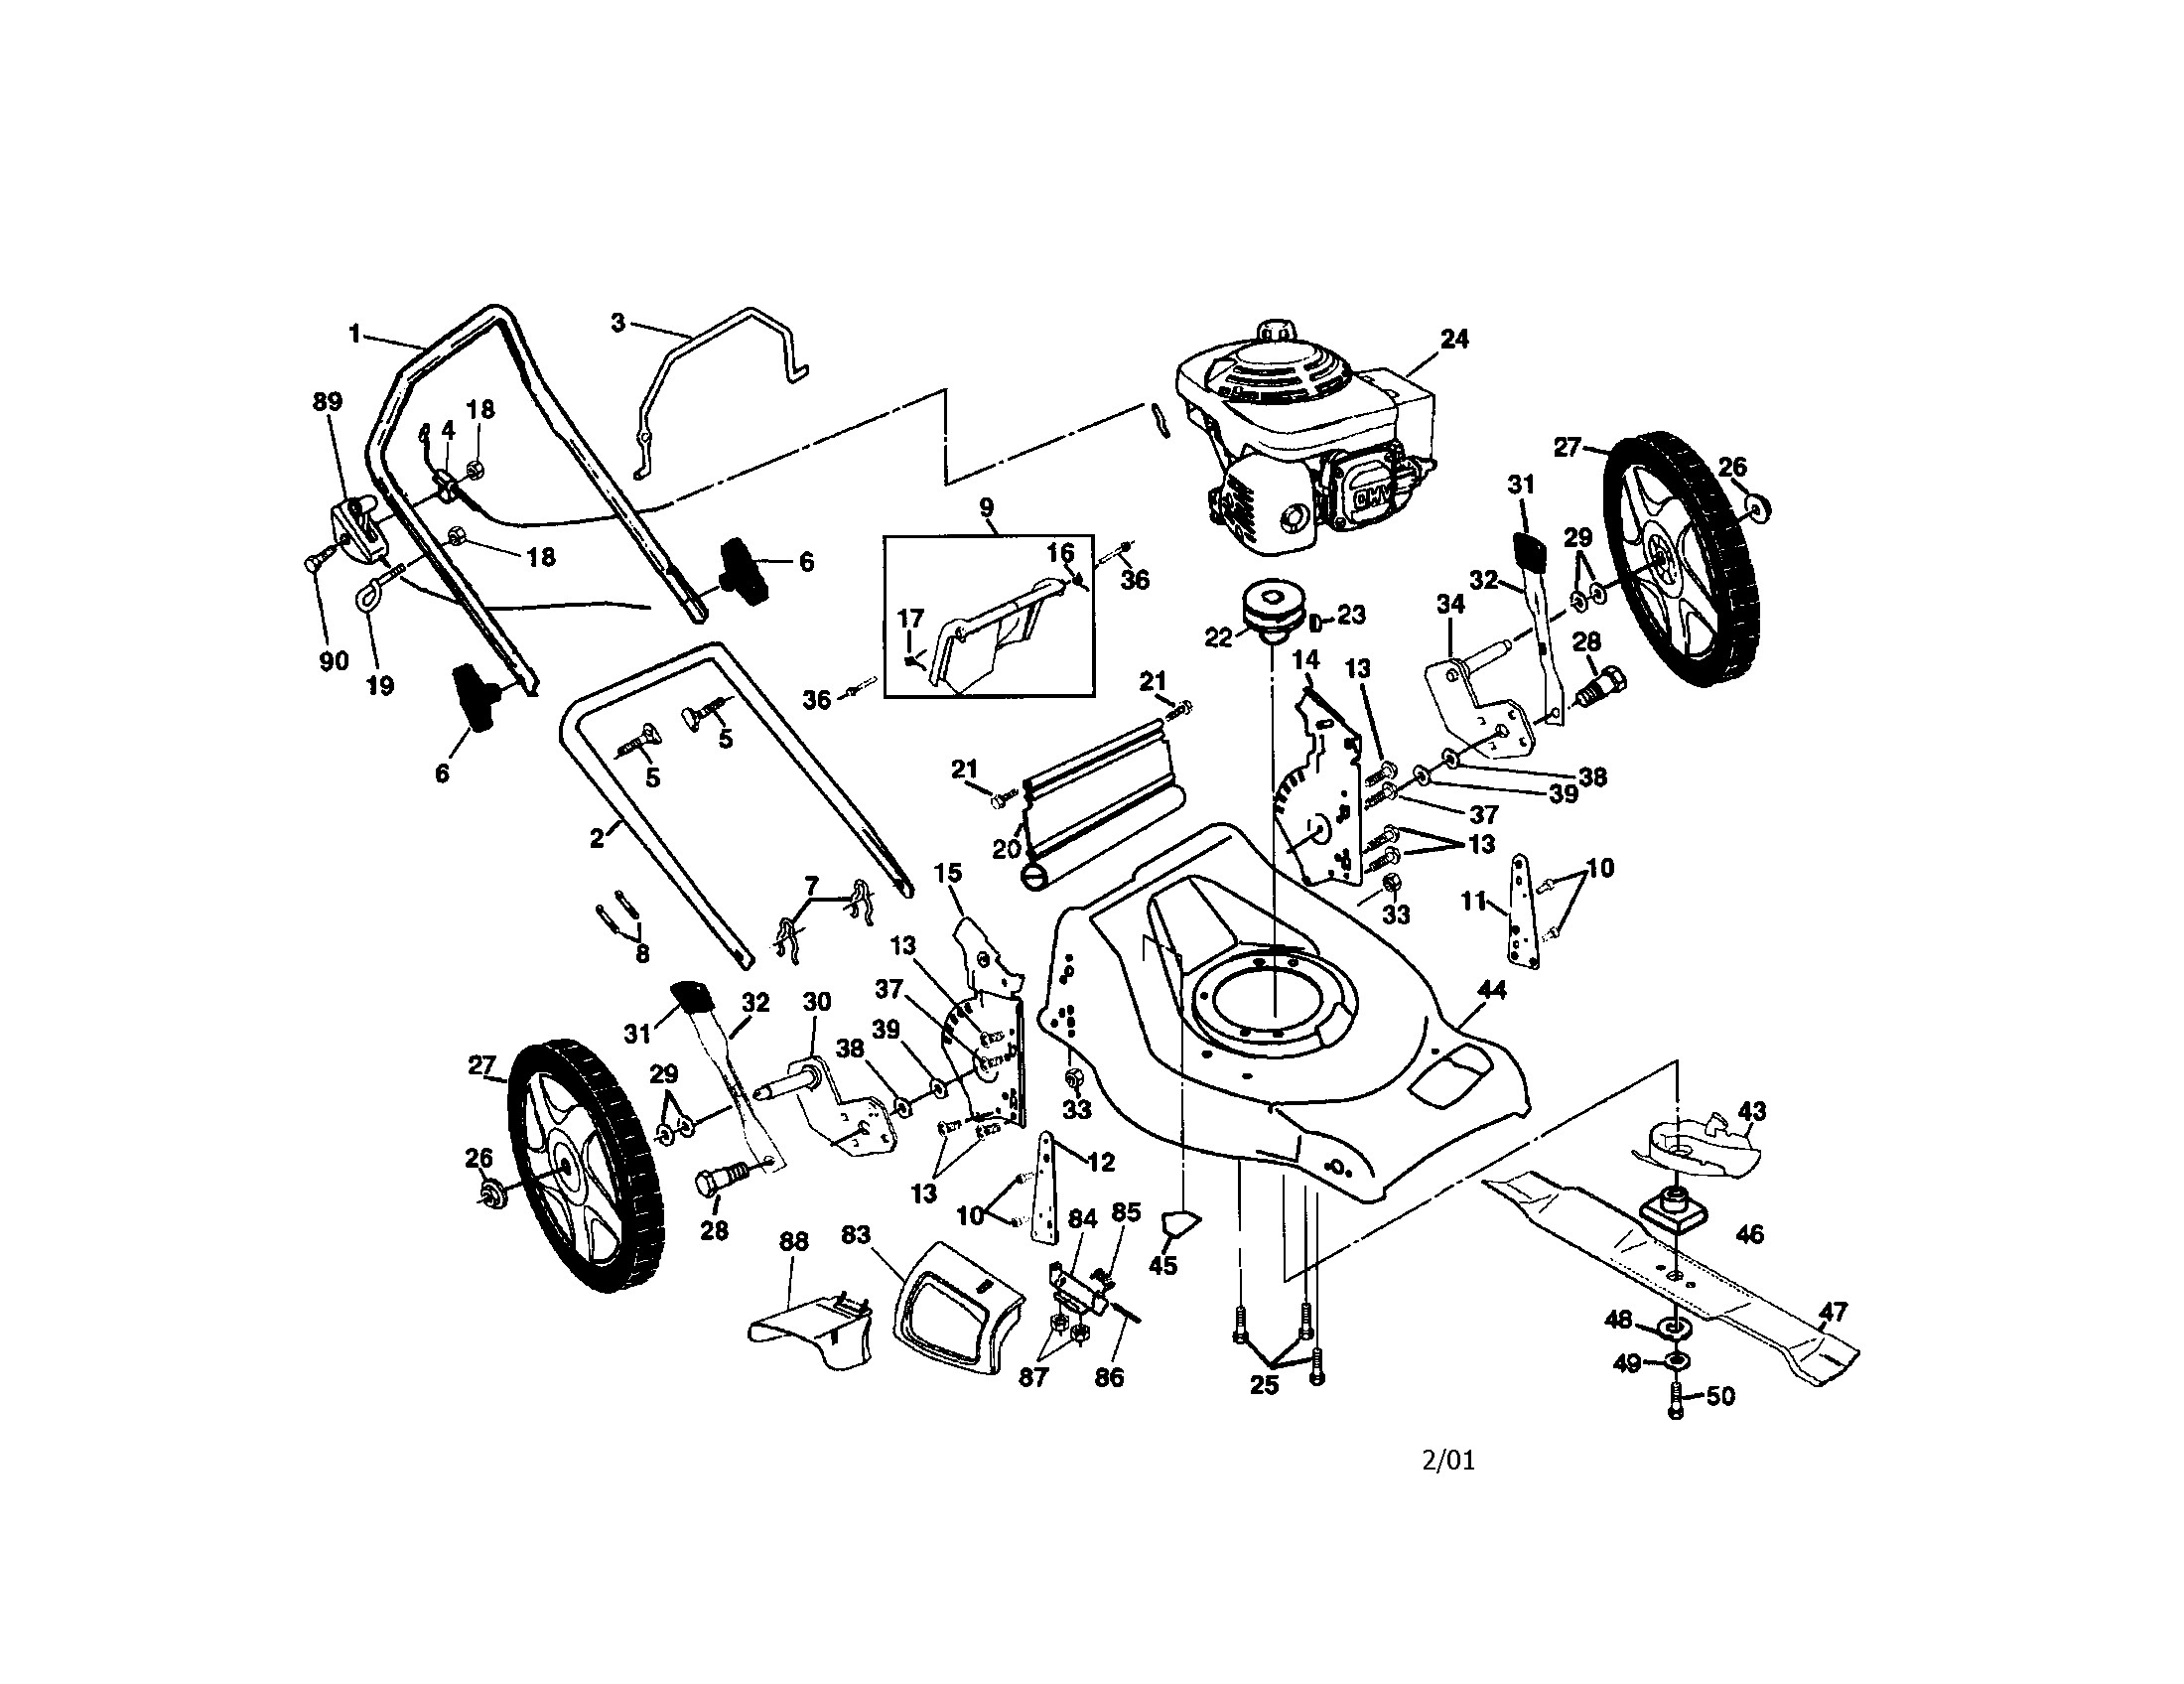 dixon lawn mower parts diagram cnc router wiring my craftsman lt1000 riding pro of